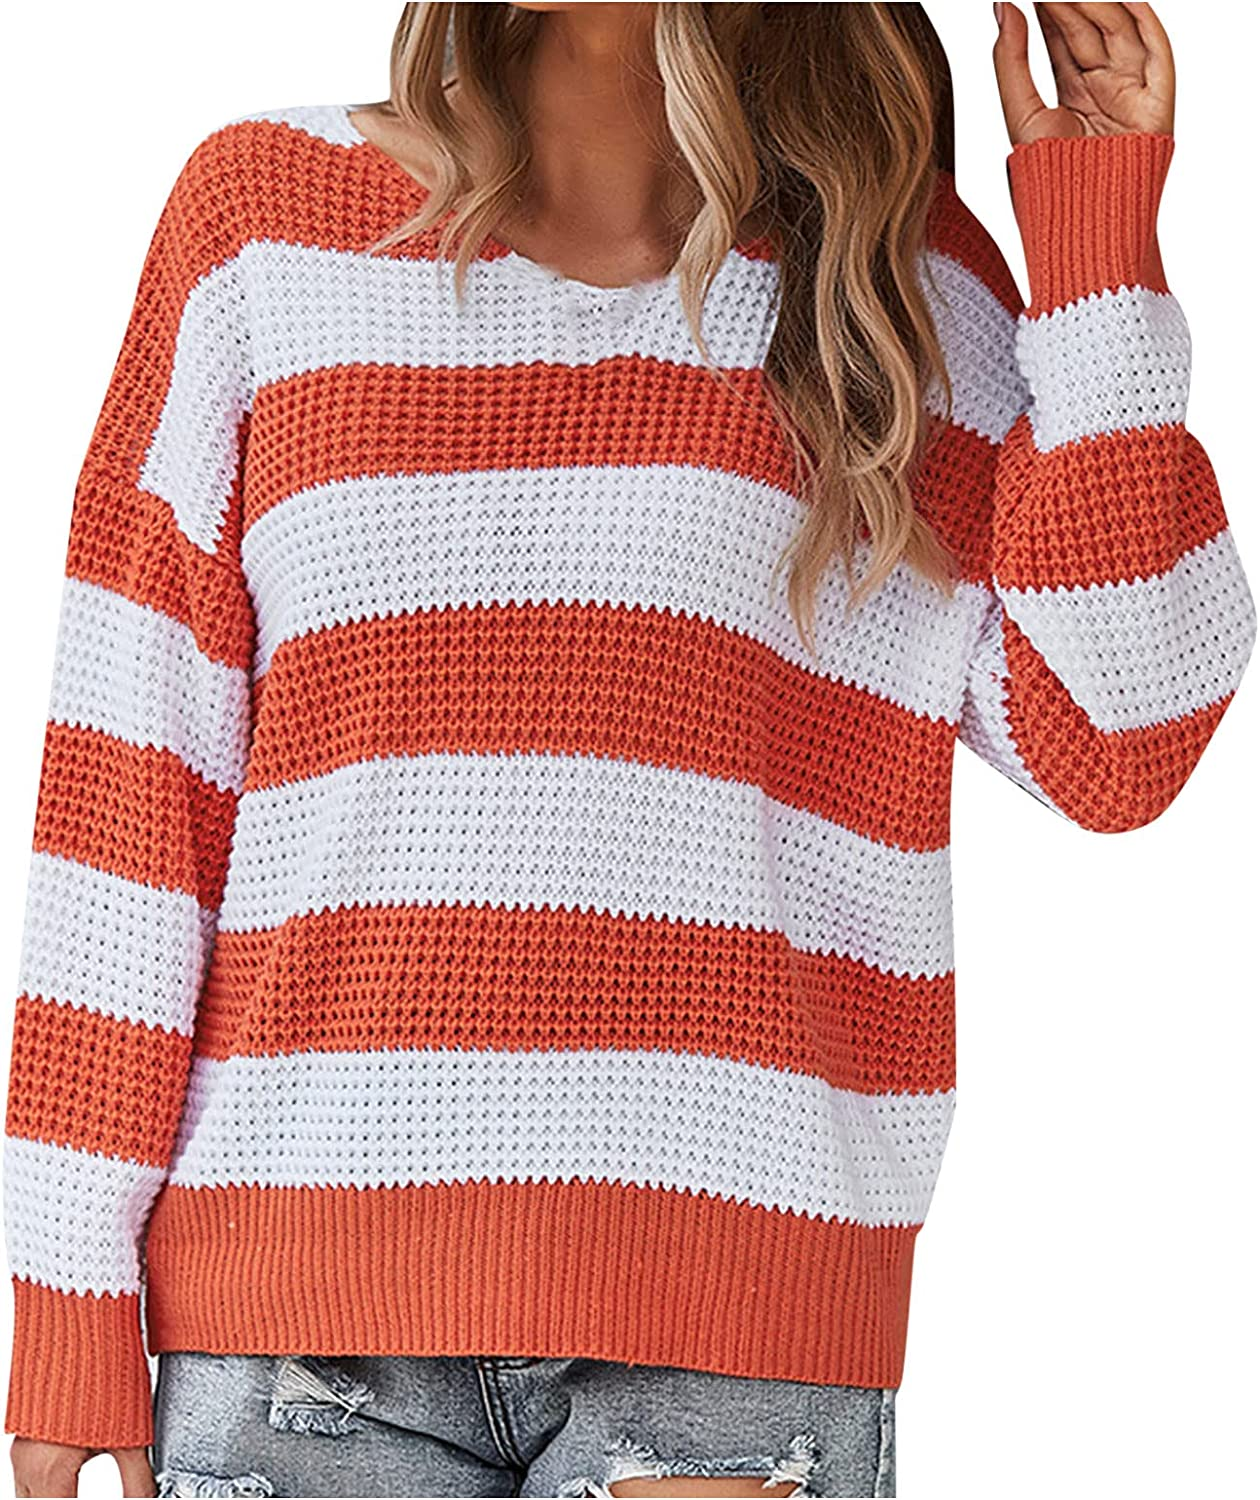 RUIY Women's Fall Striped Color Block Sweateres, Long Sleeve Crew Neck Loose Oversized Knitted Jumper Tops Pullover Sweater